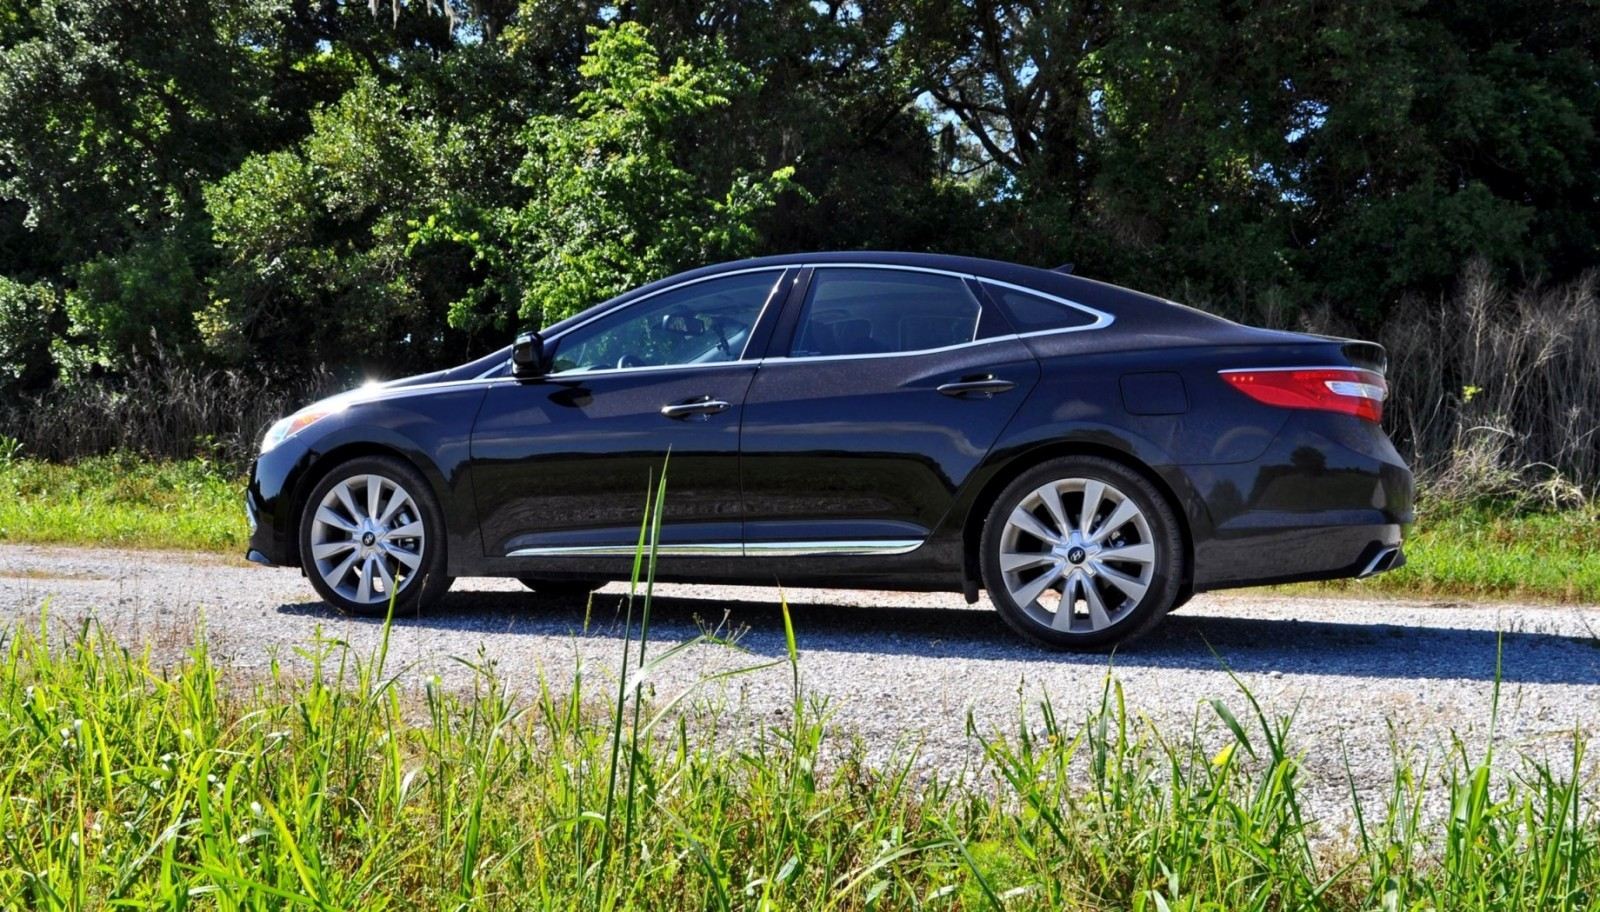 Road Test Review - 2015 Hyundai AZERA Limited 4